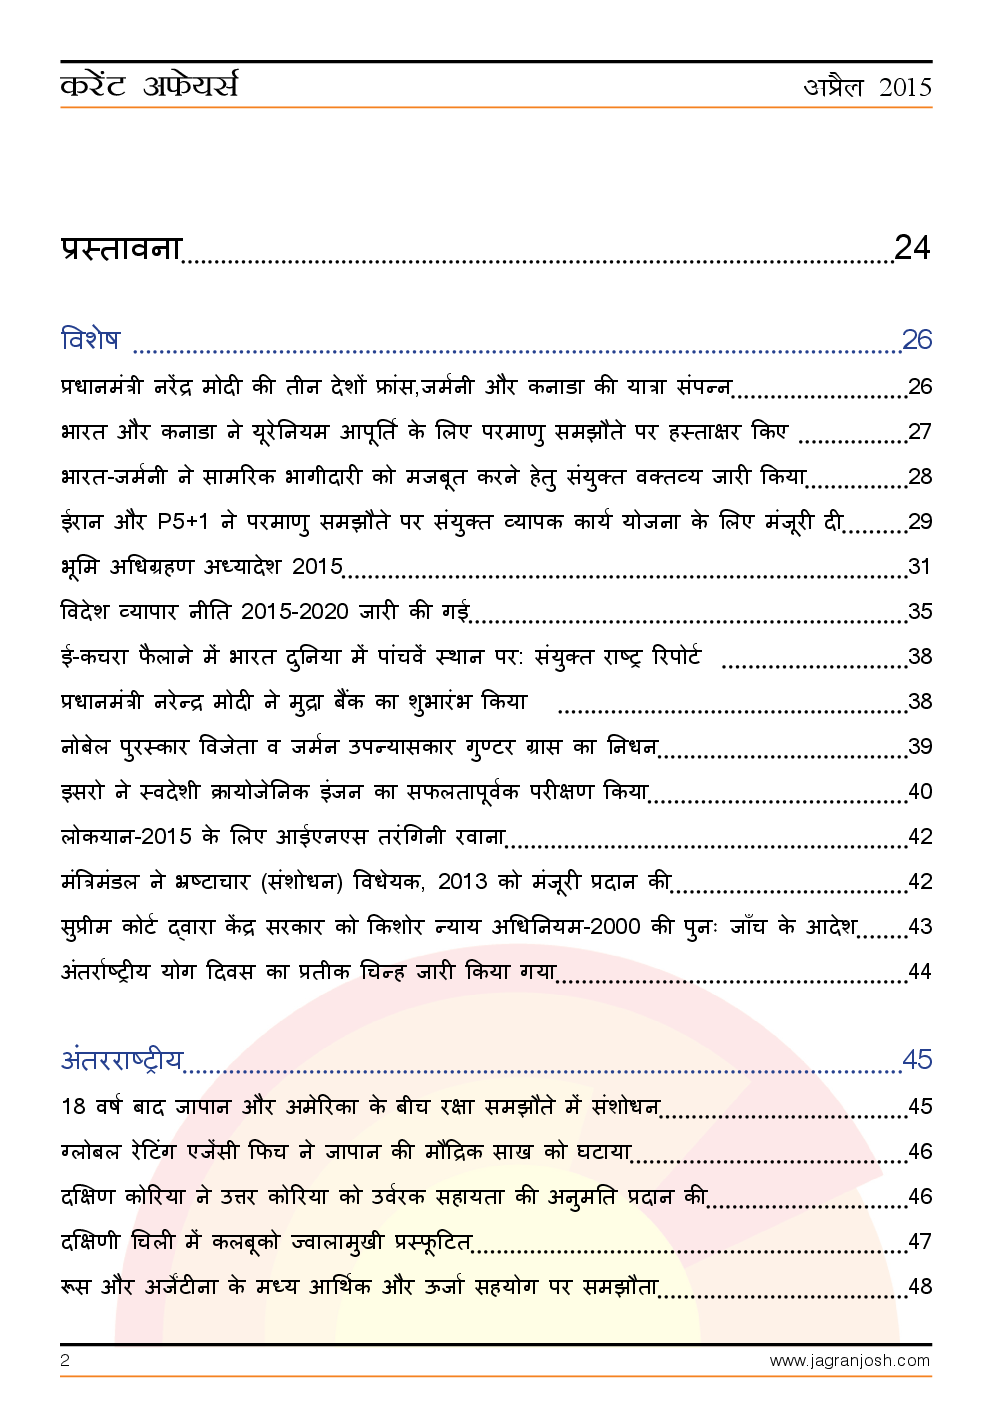 Current Affairs April 2015 (Hindi) - Page 2